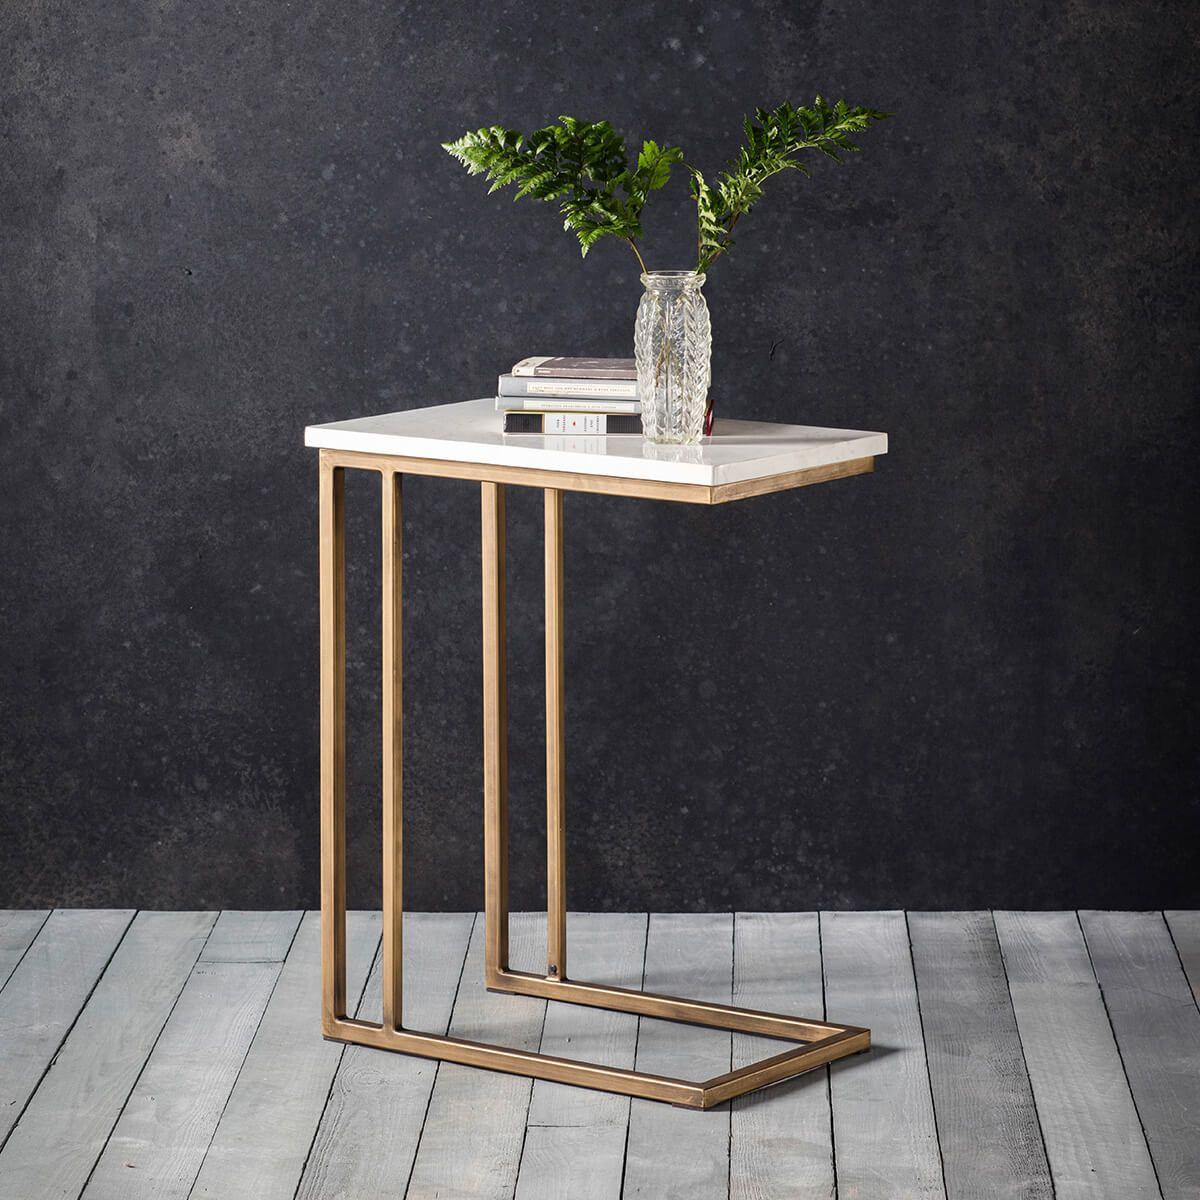 Arden Grace Marble Supper Table 0 Finance Fads Co Uk With Images Marble Side Tables Marble Tables Living Room Sofa Side Table